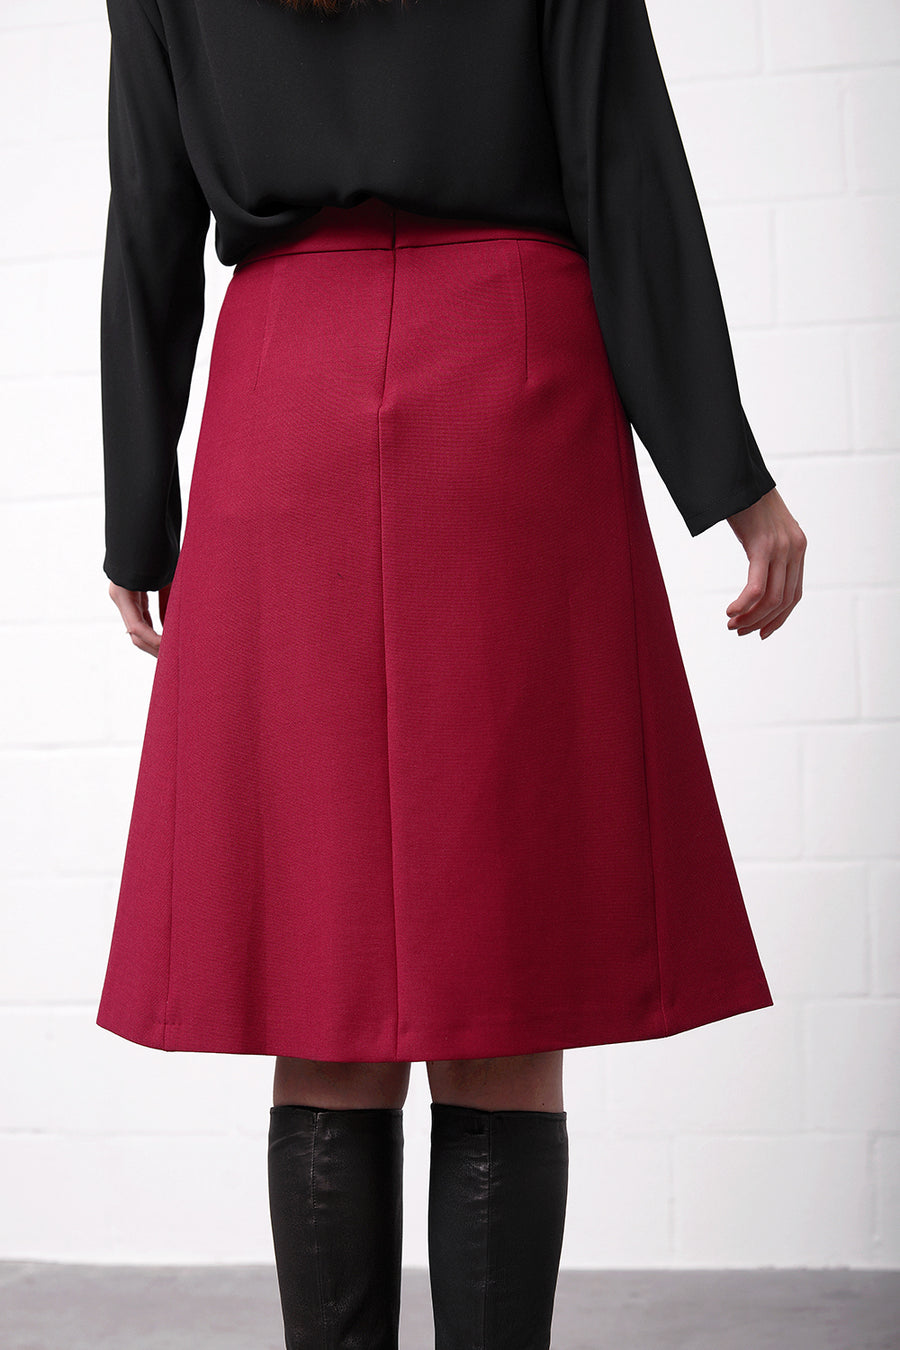 Goea Skirt - berry